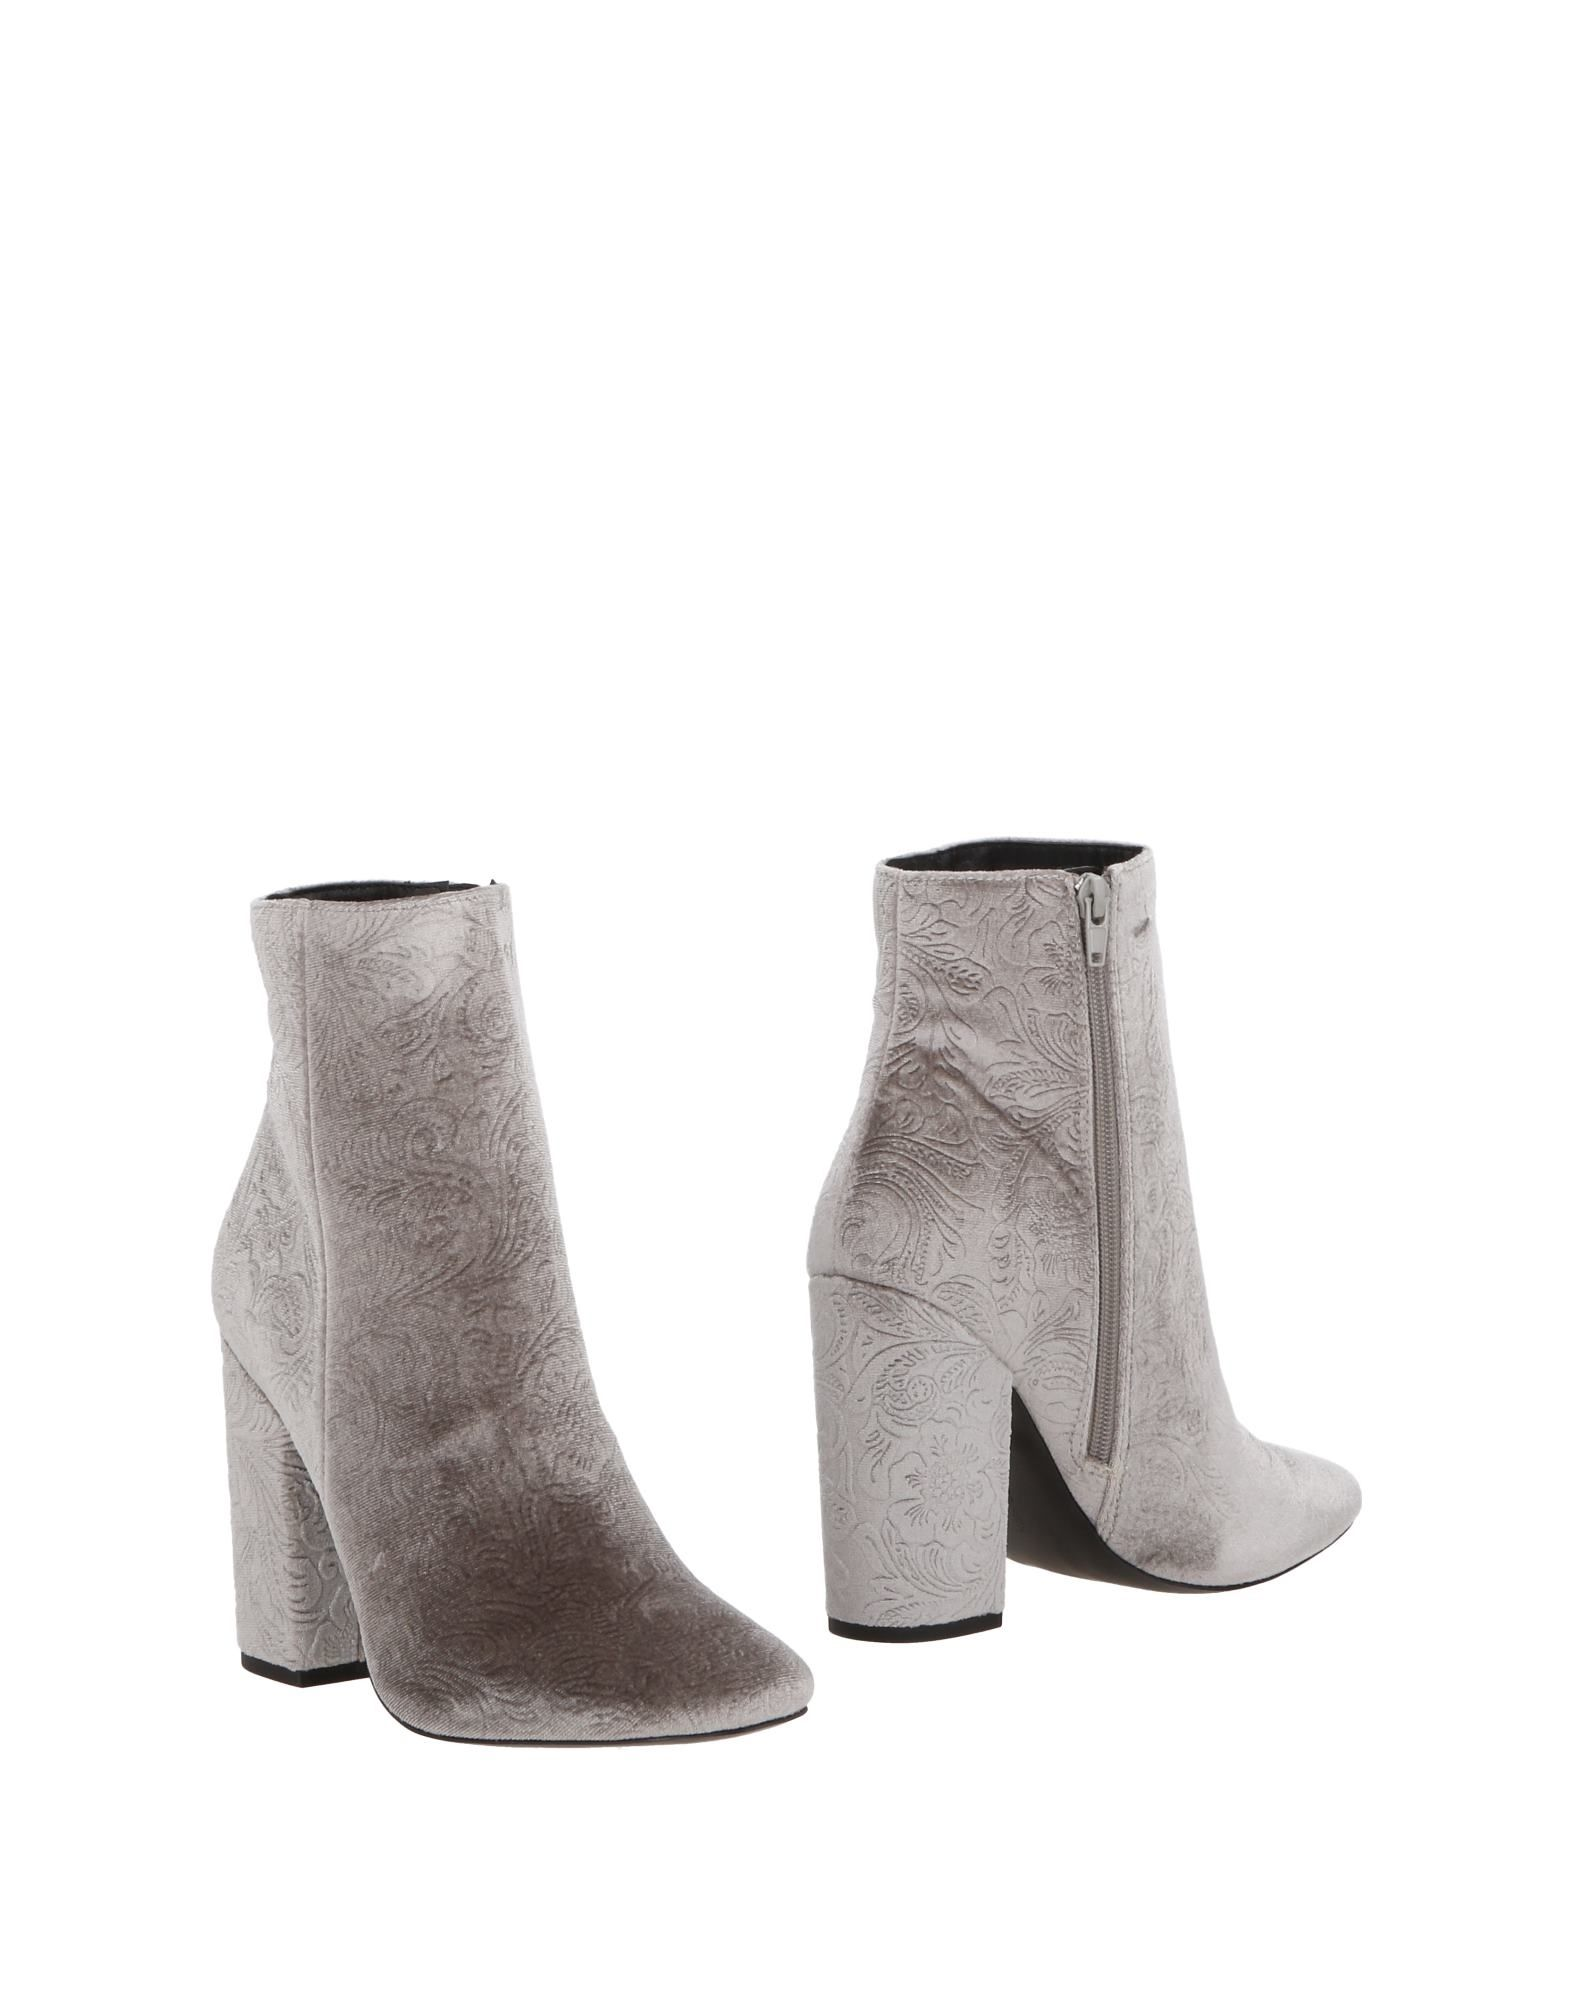 WINDSOR SMITH Ankle Boots in Grey